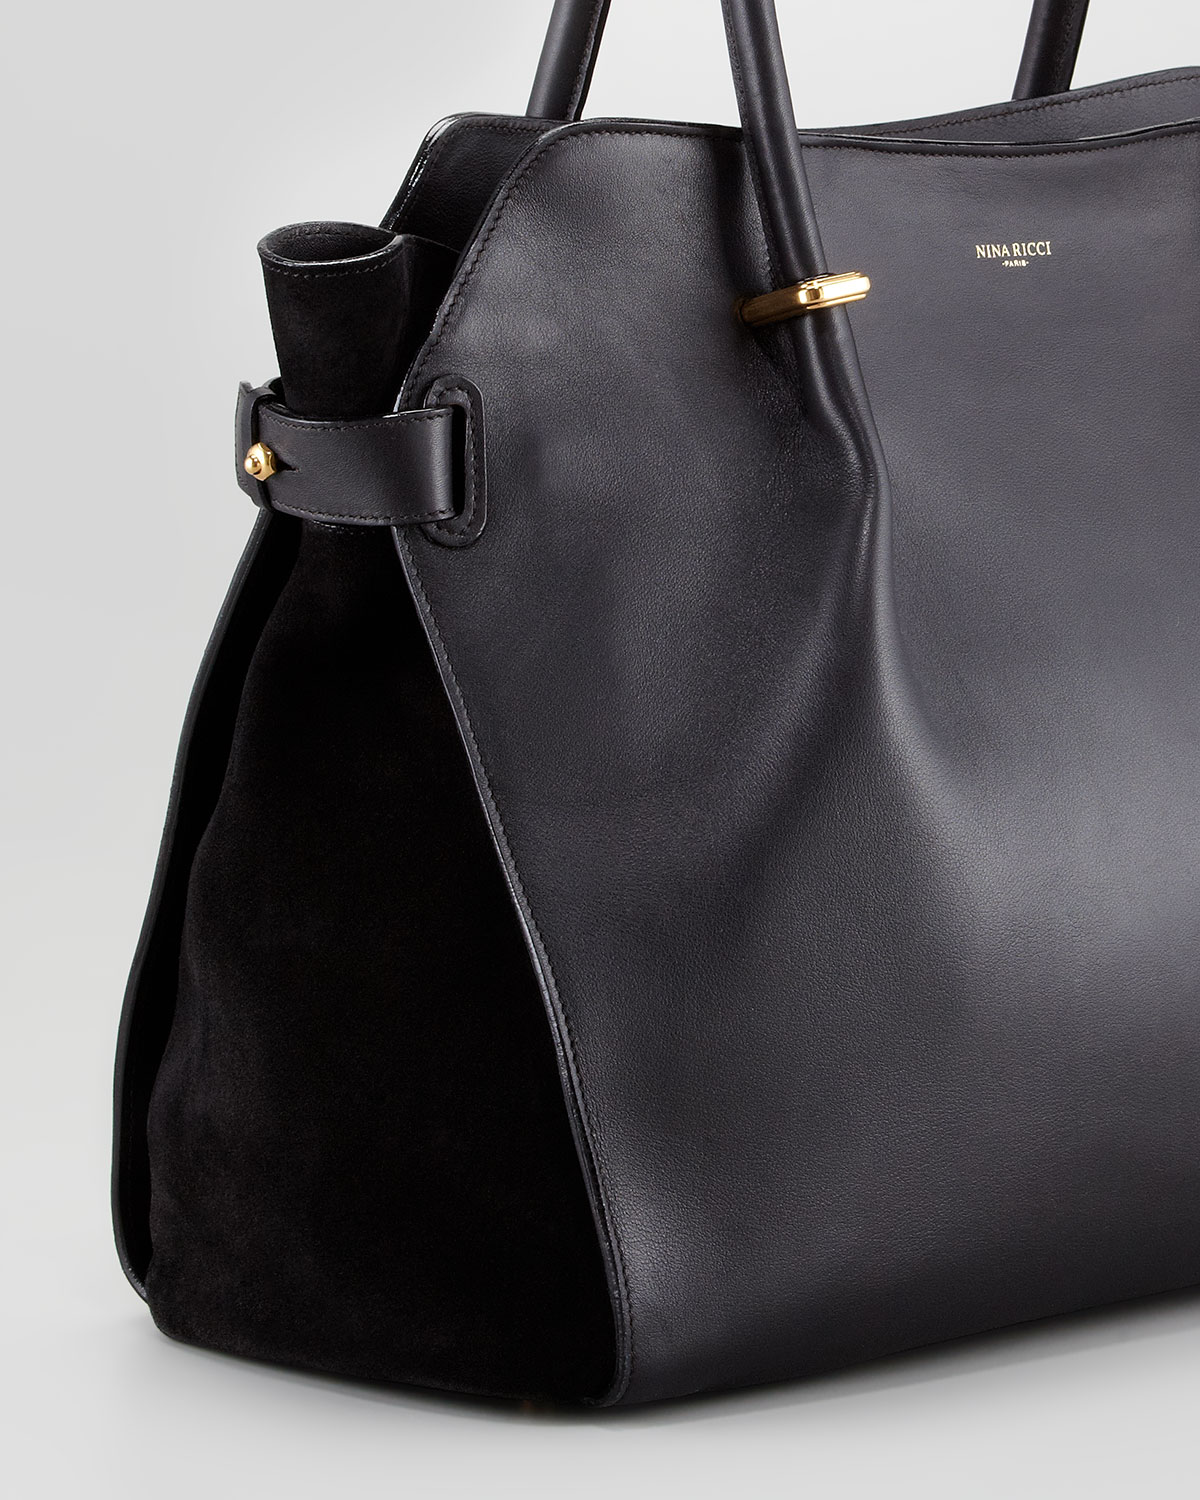 Nina ricci Marche Large Leather Tote Bag Black in Black | Lyst